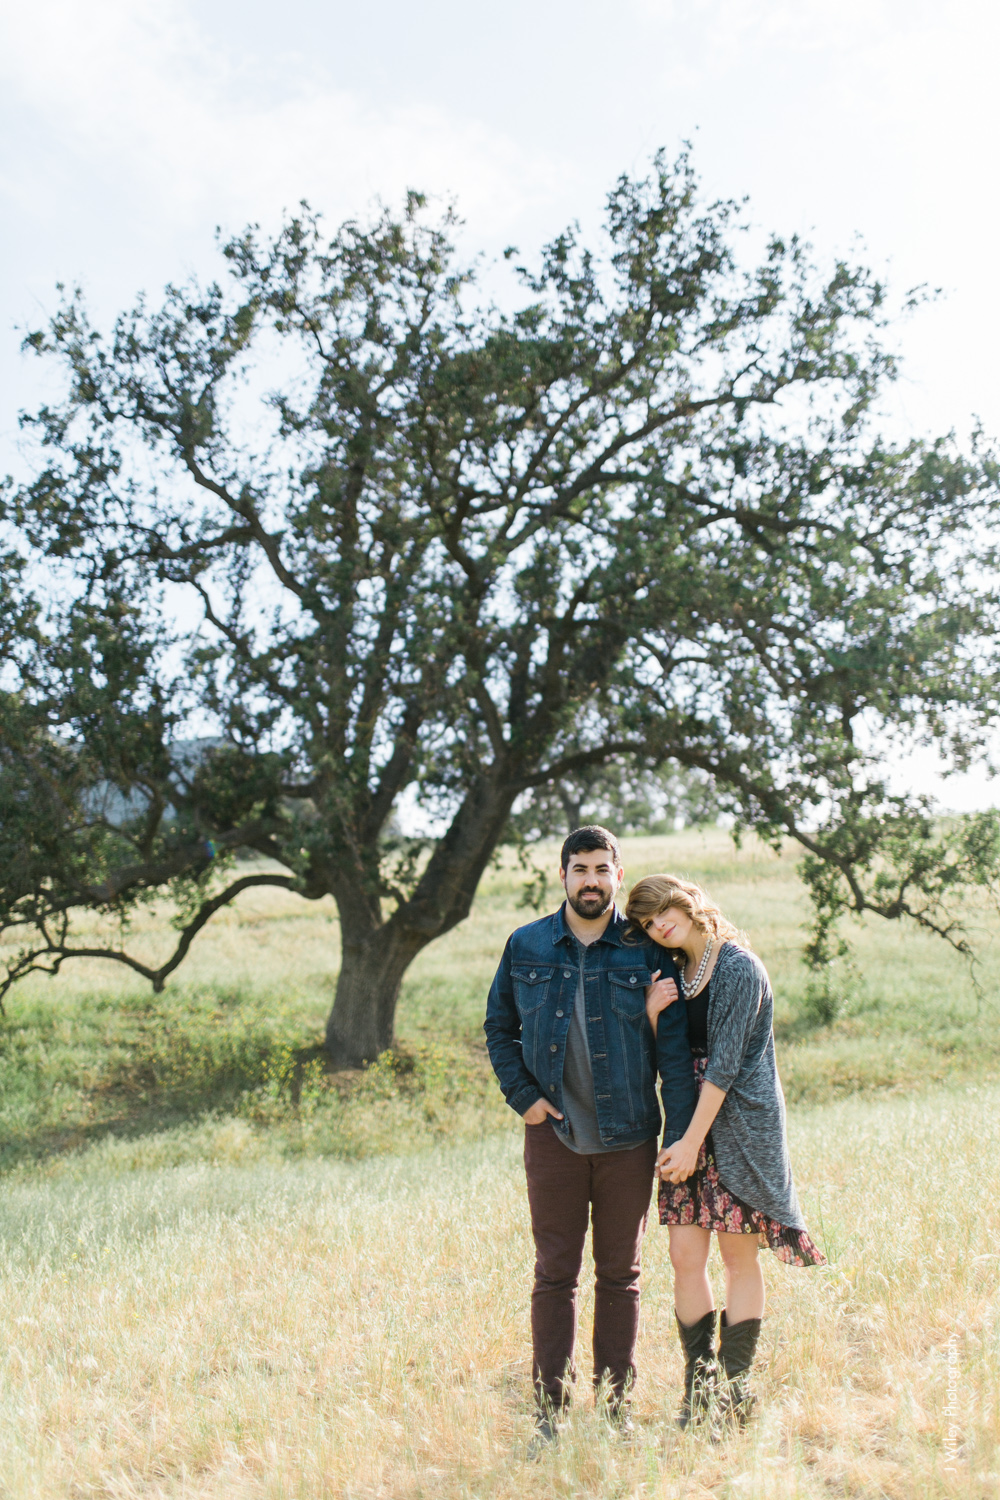 malibu engagement photography los angeles wedding photographer candid indie field mountains wildflowers-1038